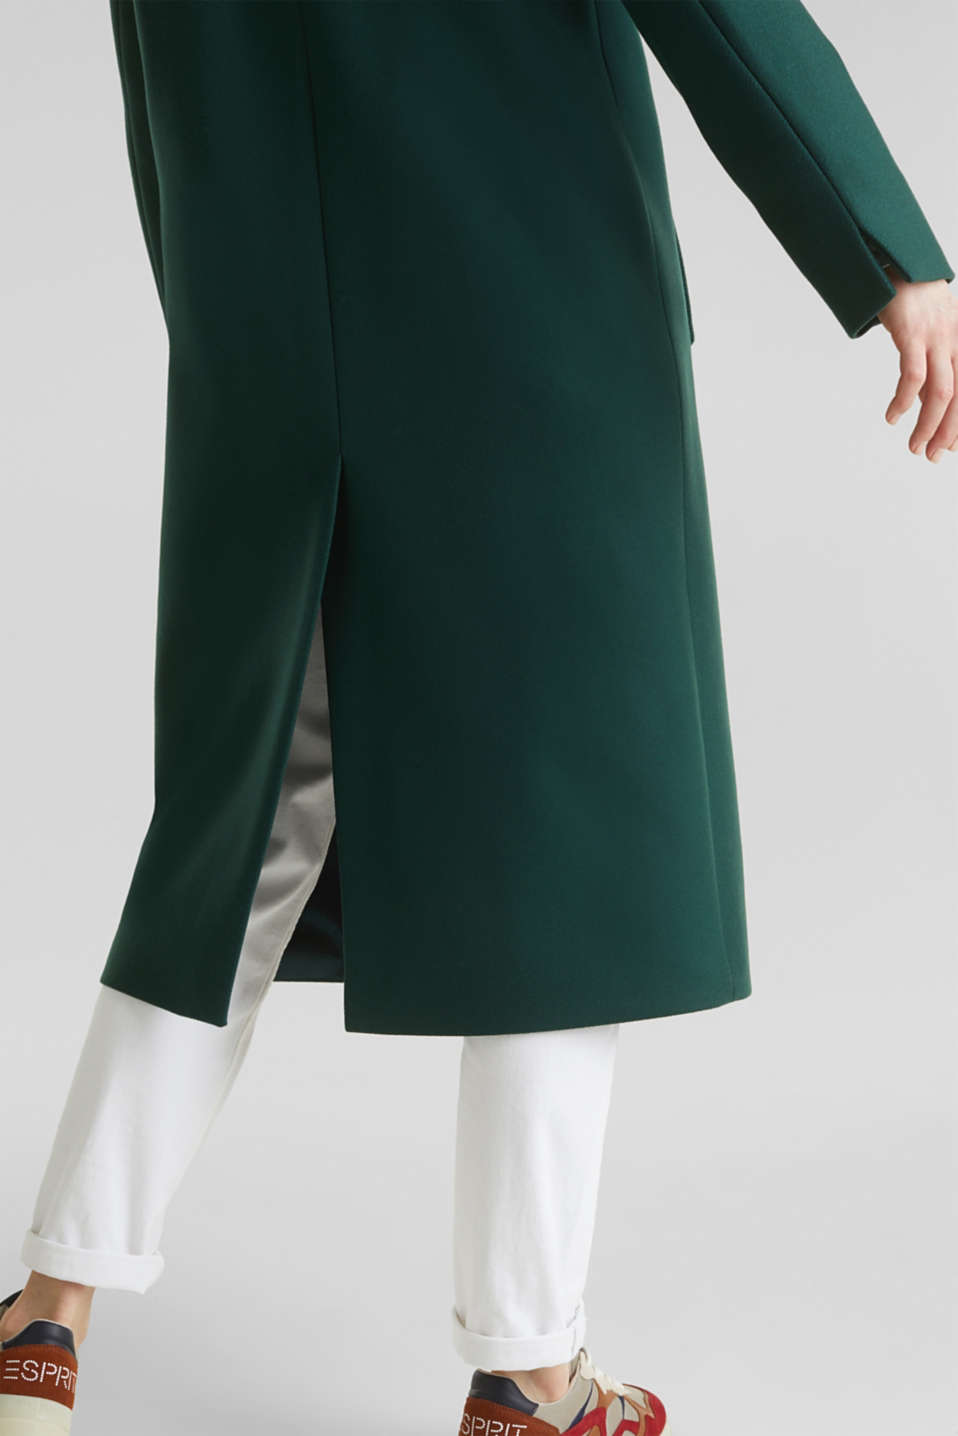 Wool blend: Coat made of Italian yarn, BOTTLE GREEN, detail image number 5